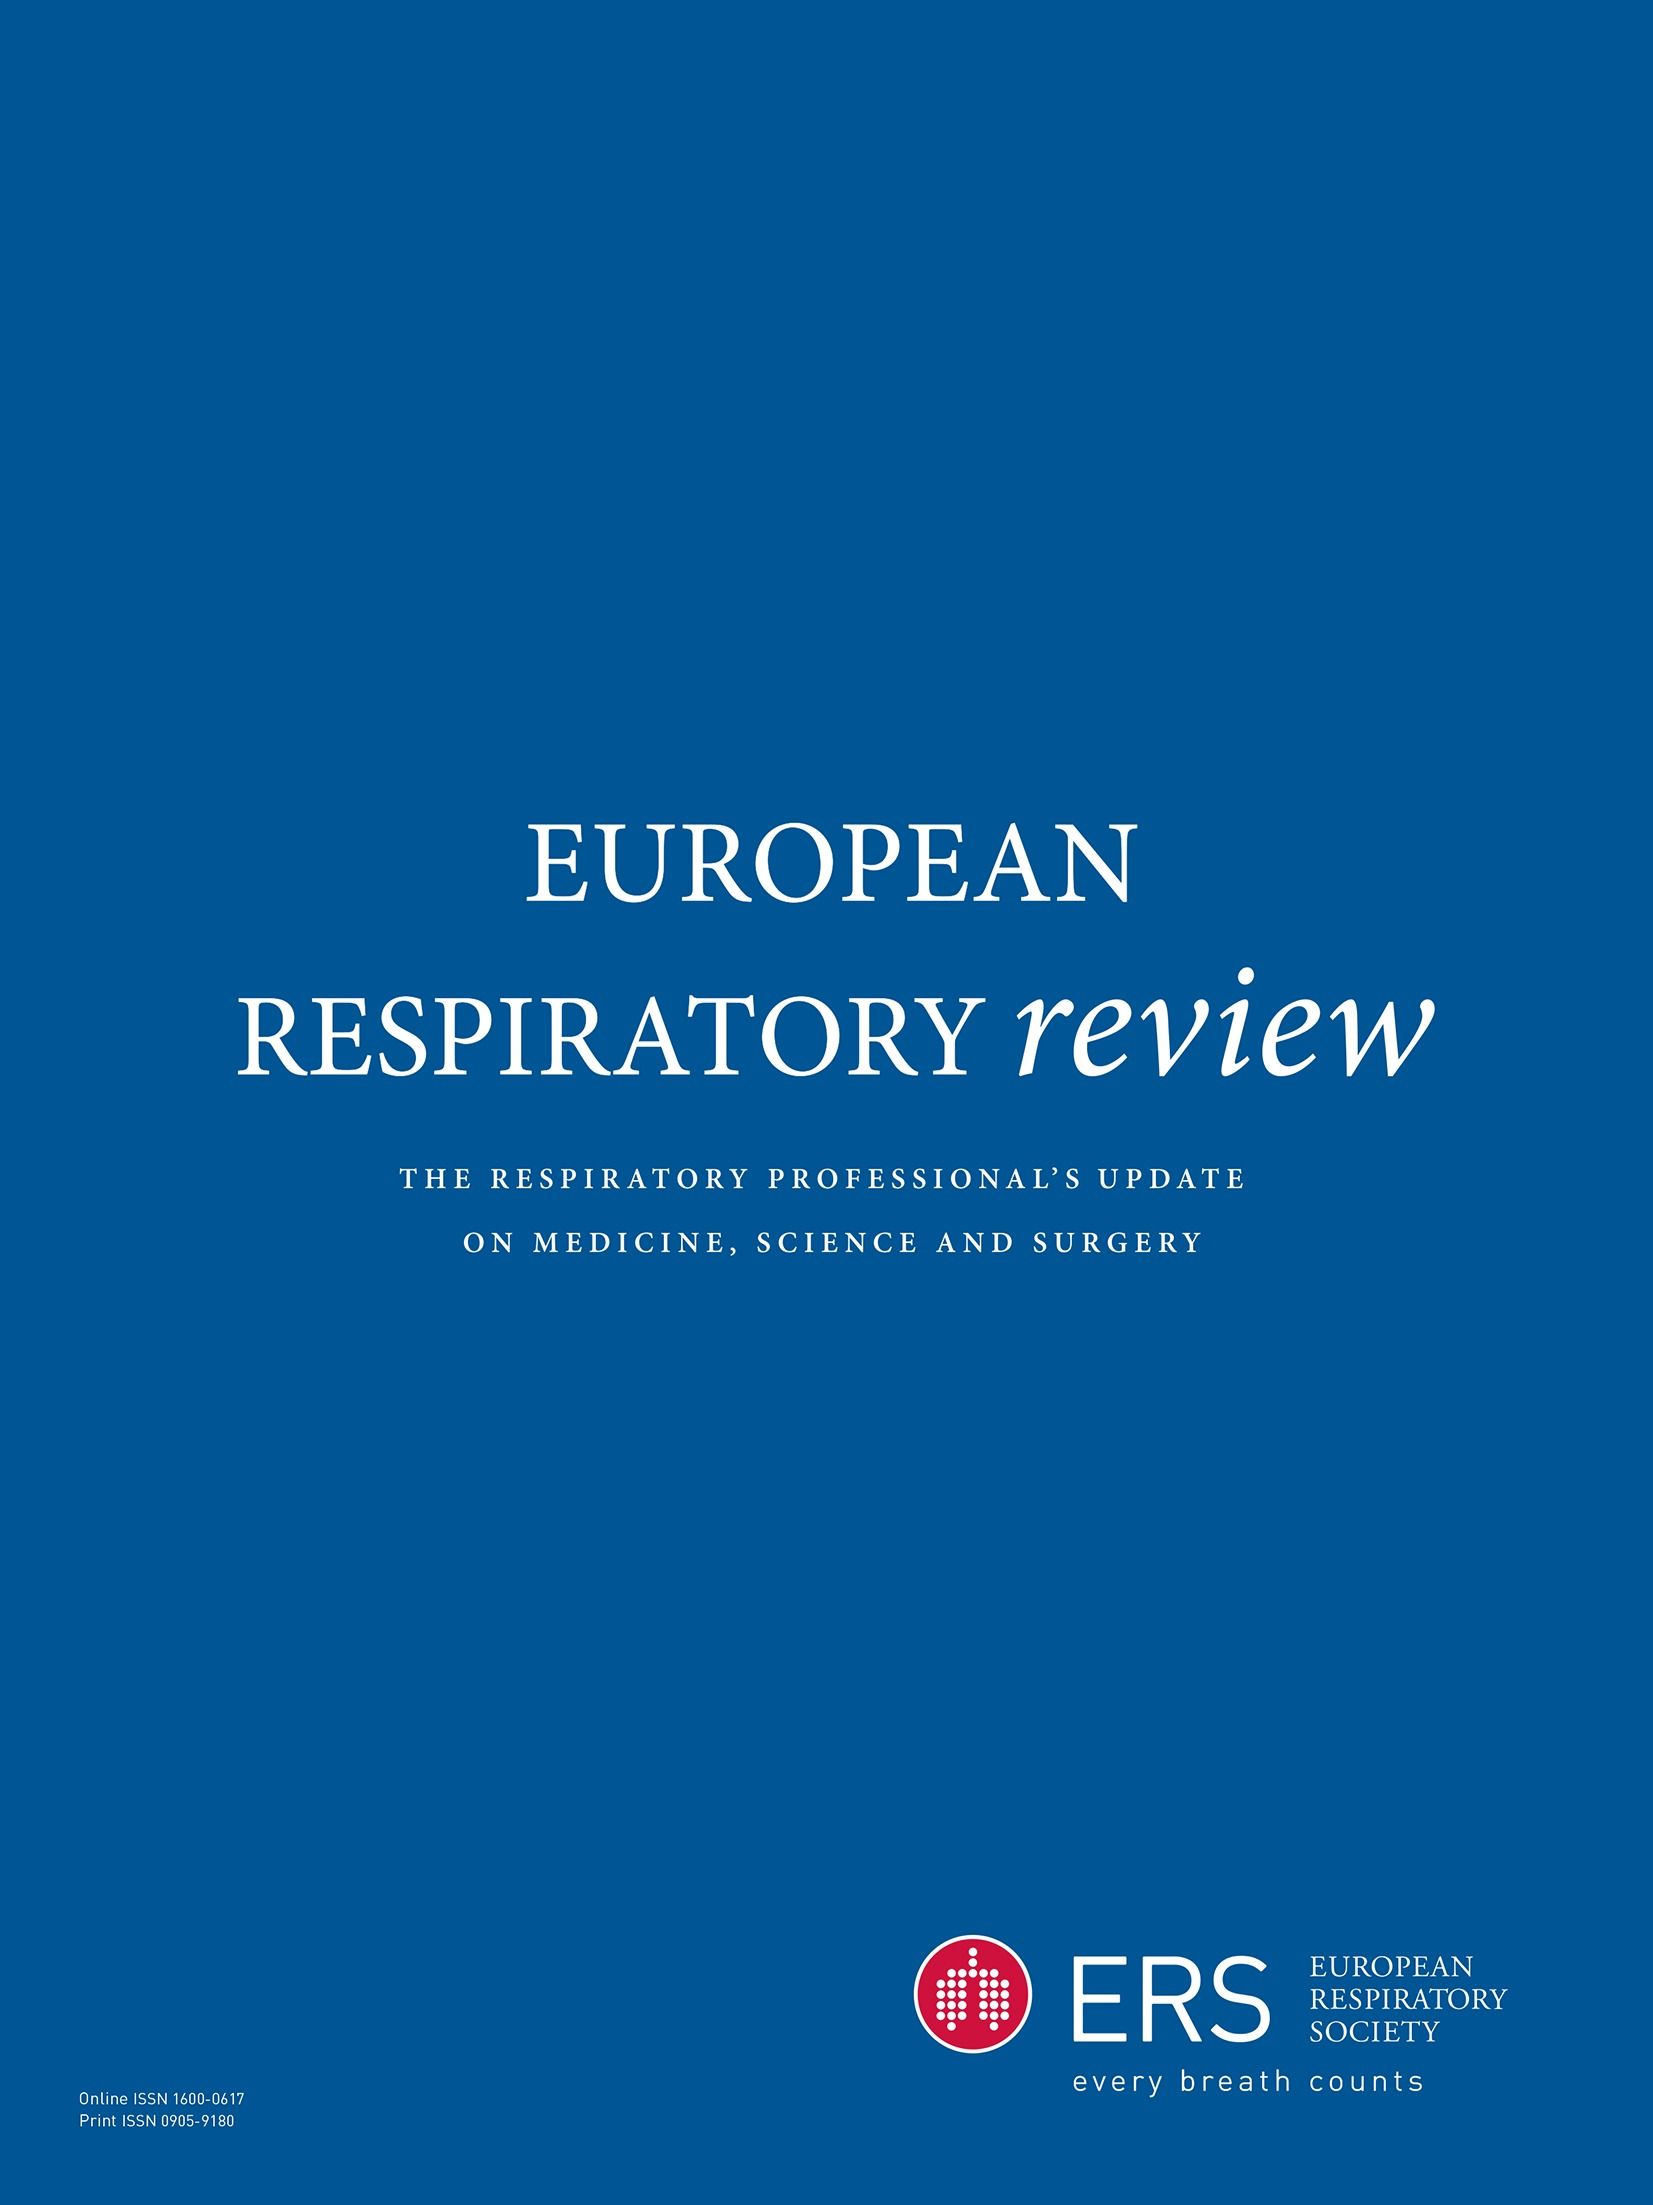 How should we monitor patients with acute respiratory failure